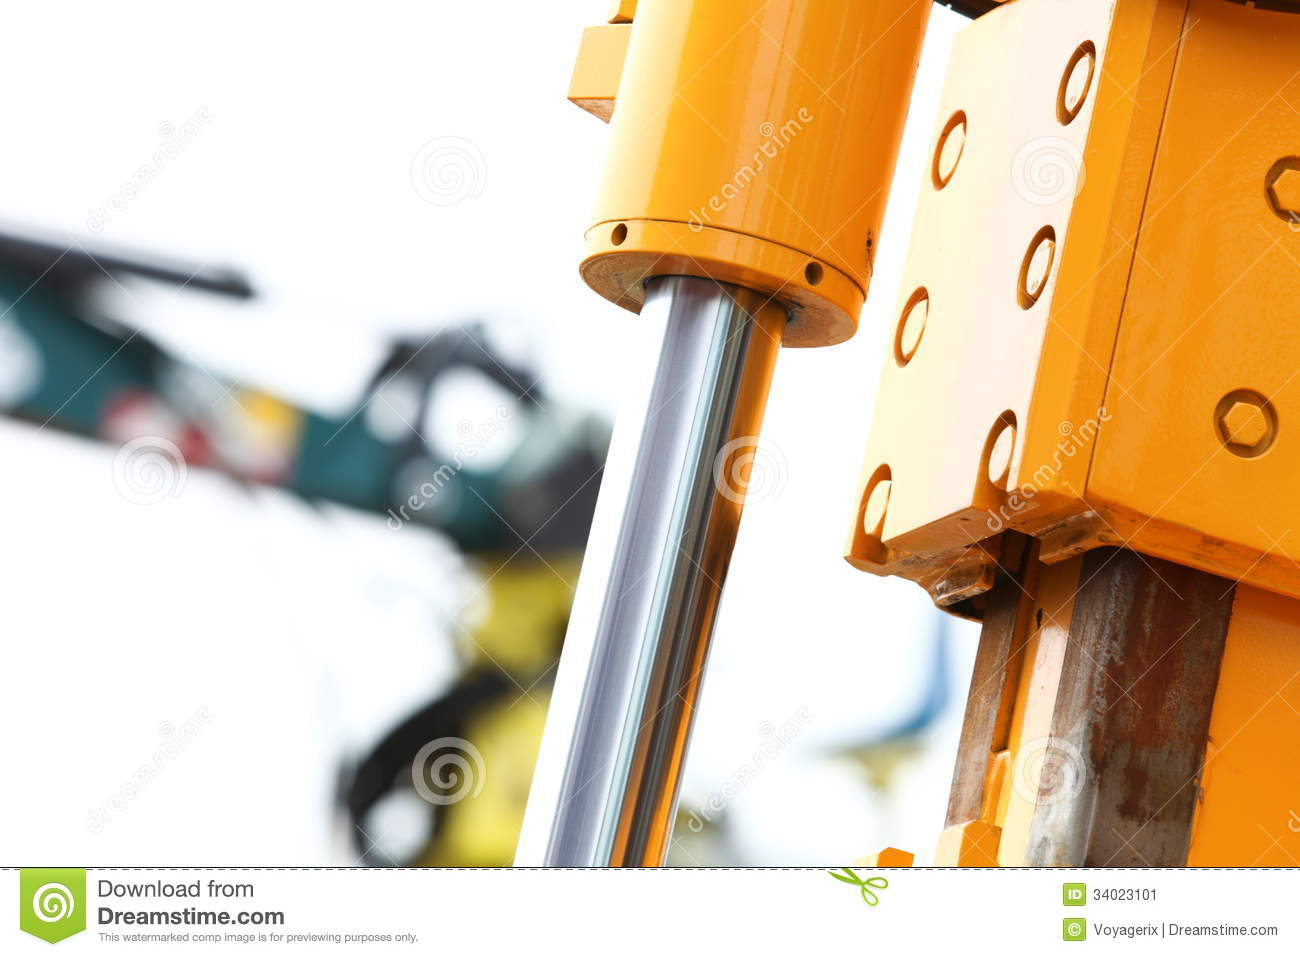 Hydraulic Arm Door Detail : Detail of hydraulic bulldozer white background stock image